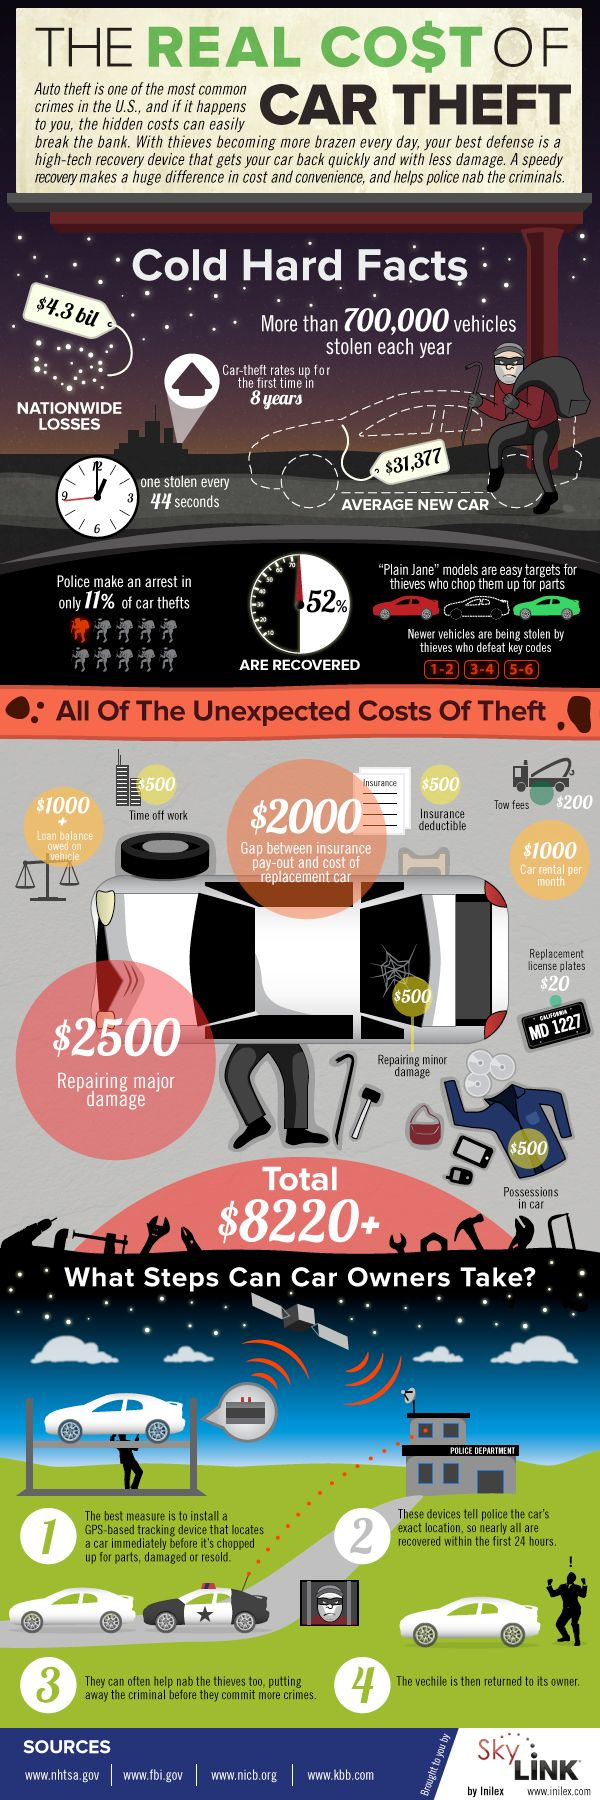 The Real Cost of Auto Theft | Infographic, Car insurance ...